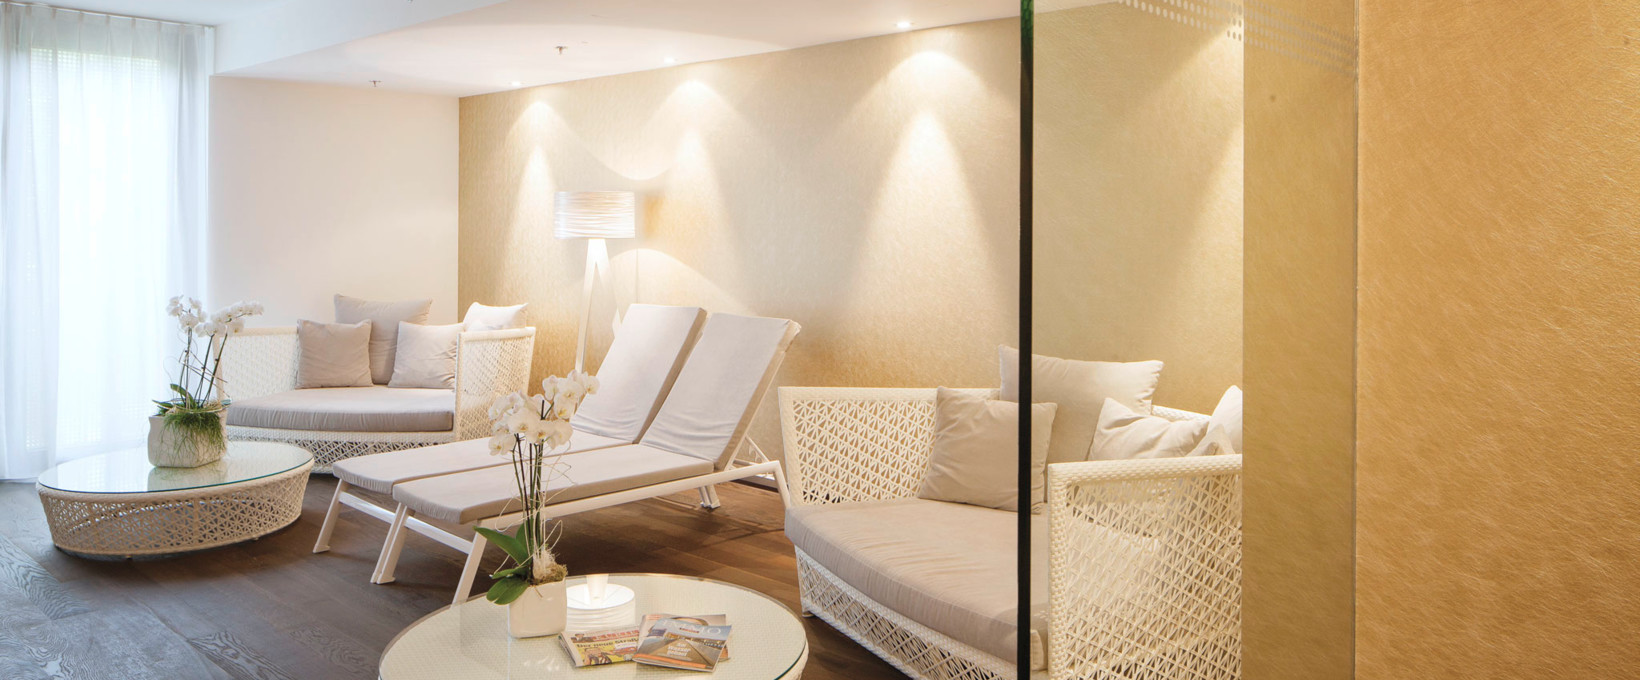 Recreation room with seating and lying area  | Radisson Blu Park Royal Palace Hotel in Vienna